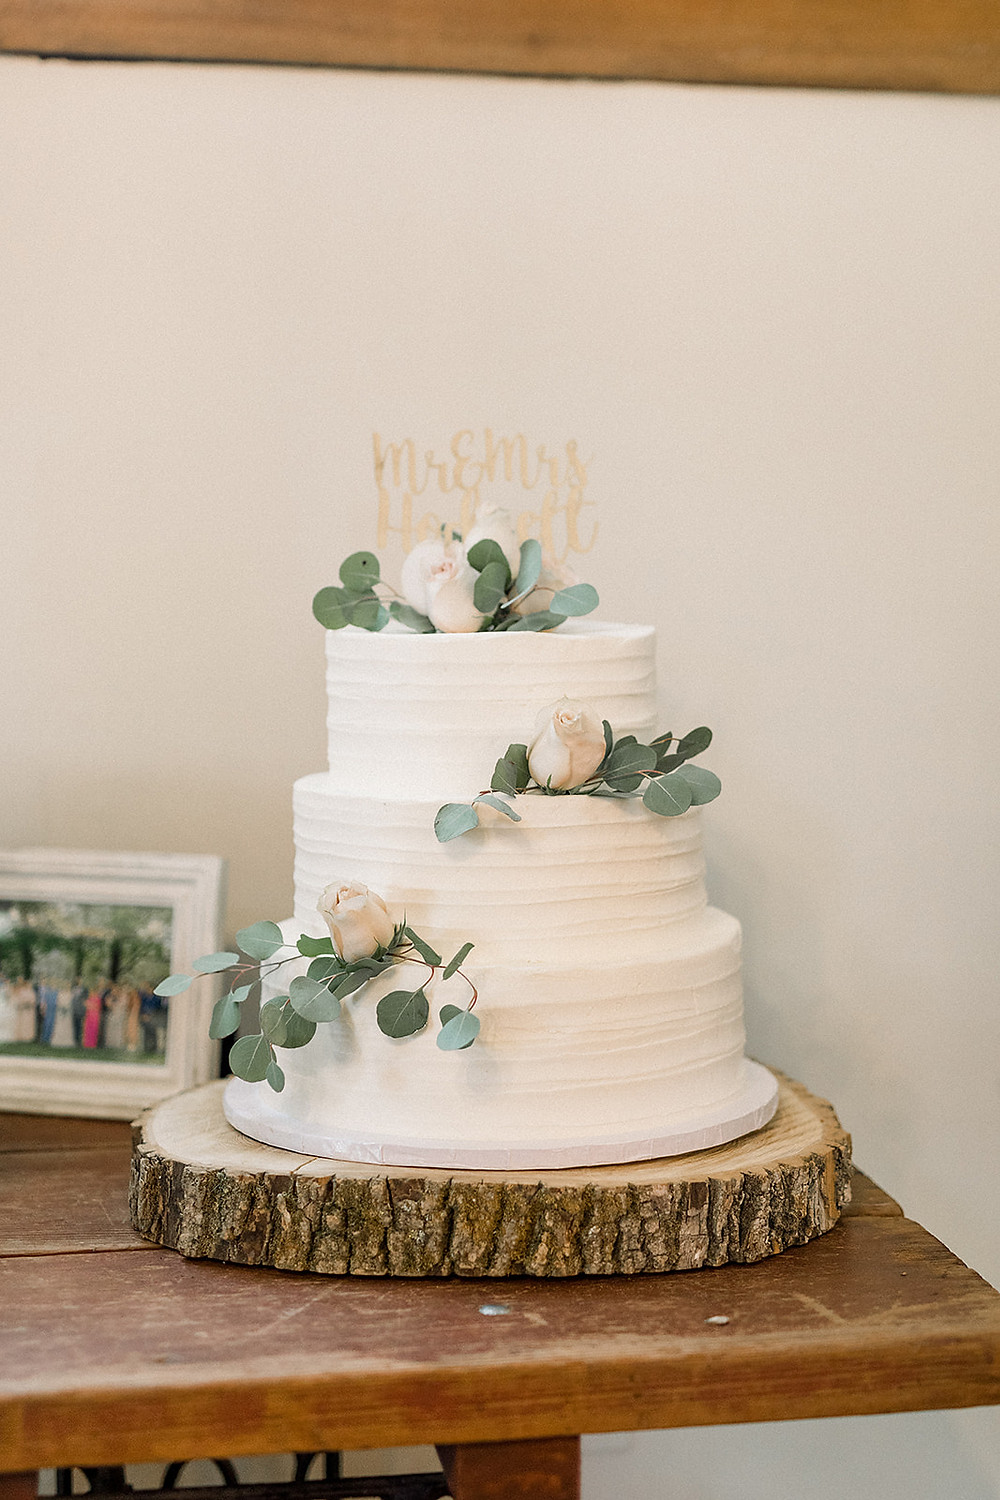 Simple rose and greens on 3-tier cake. Photo by Between Pines.